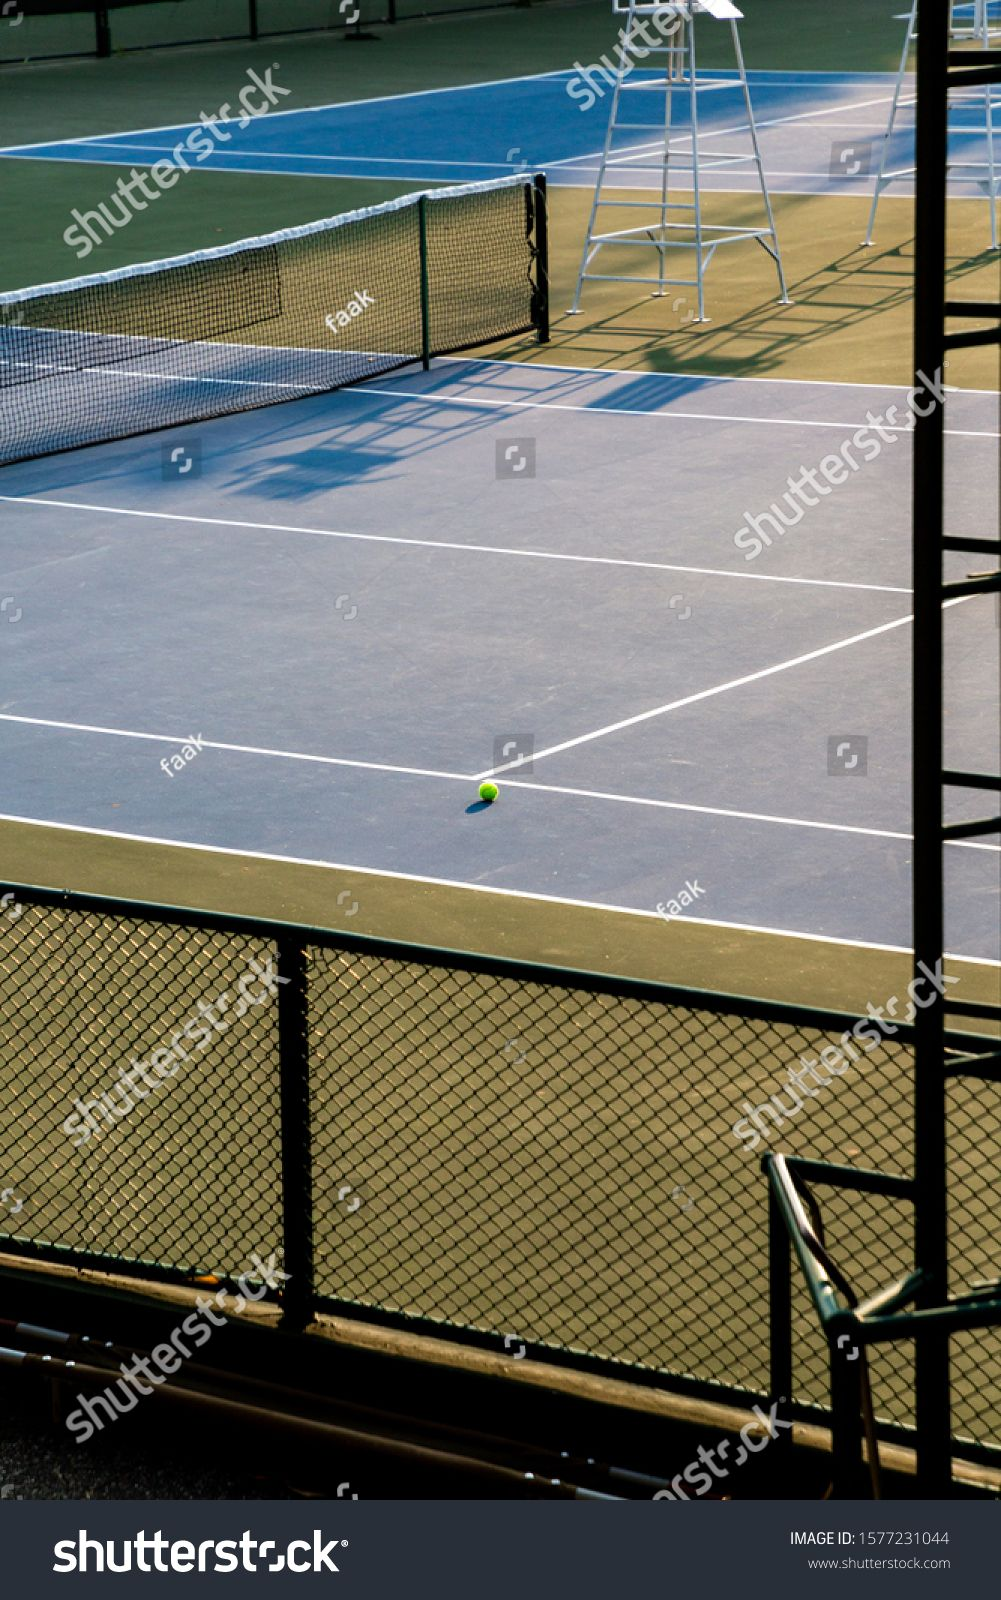 Tennis Ball In Tennis Court Sport Background Concept Vertical Picture Ad Spon Court Sport Tennis Ball Tennis Court Tennis Ball Tennis